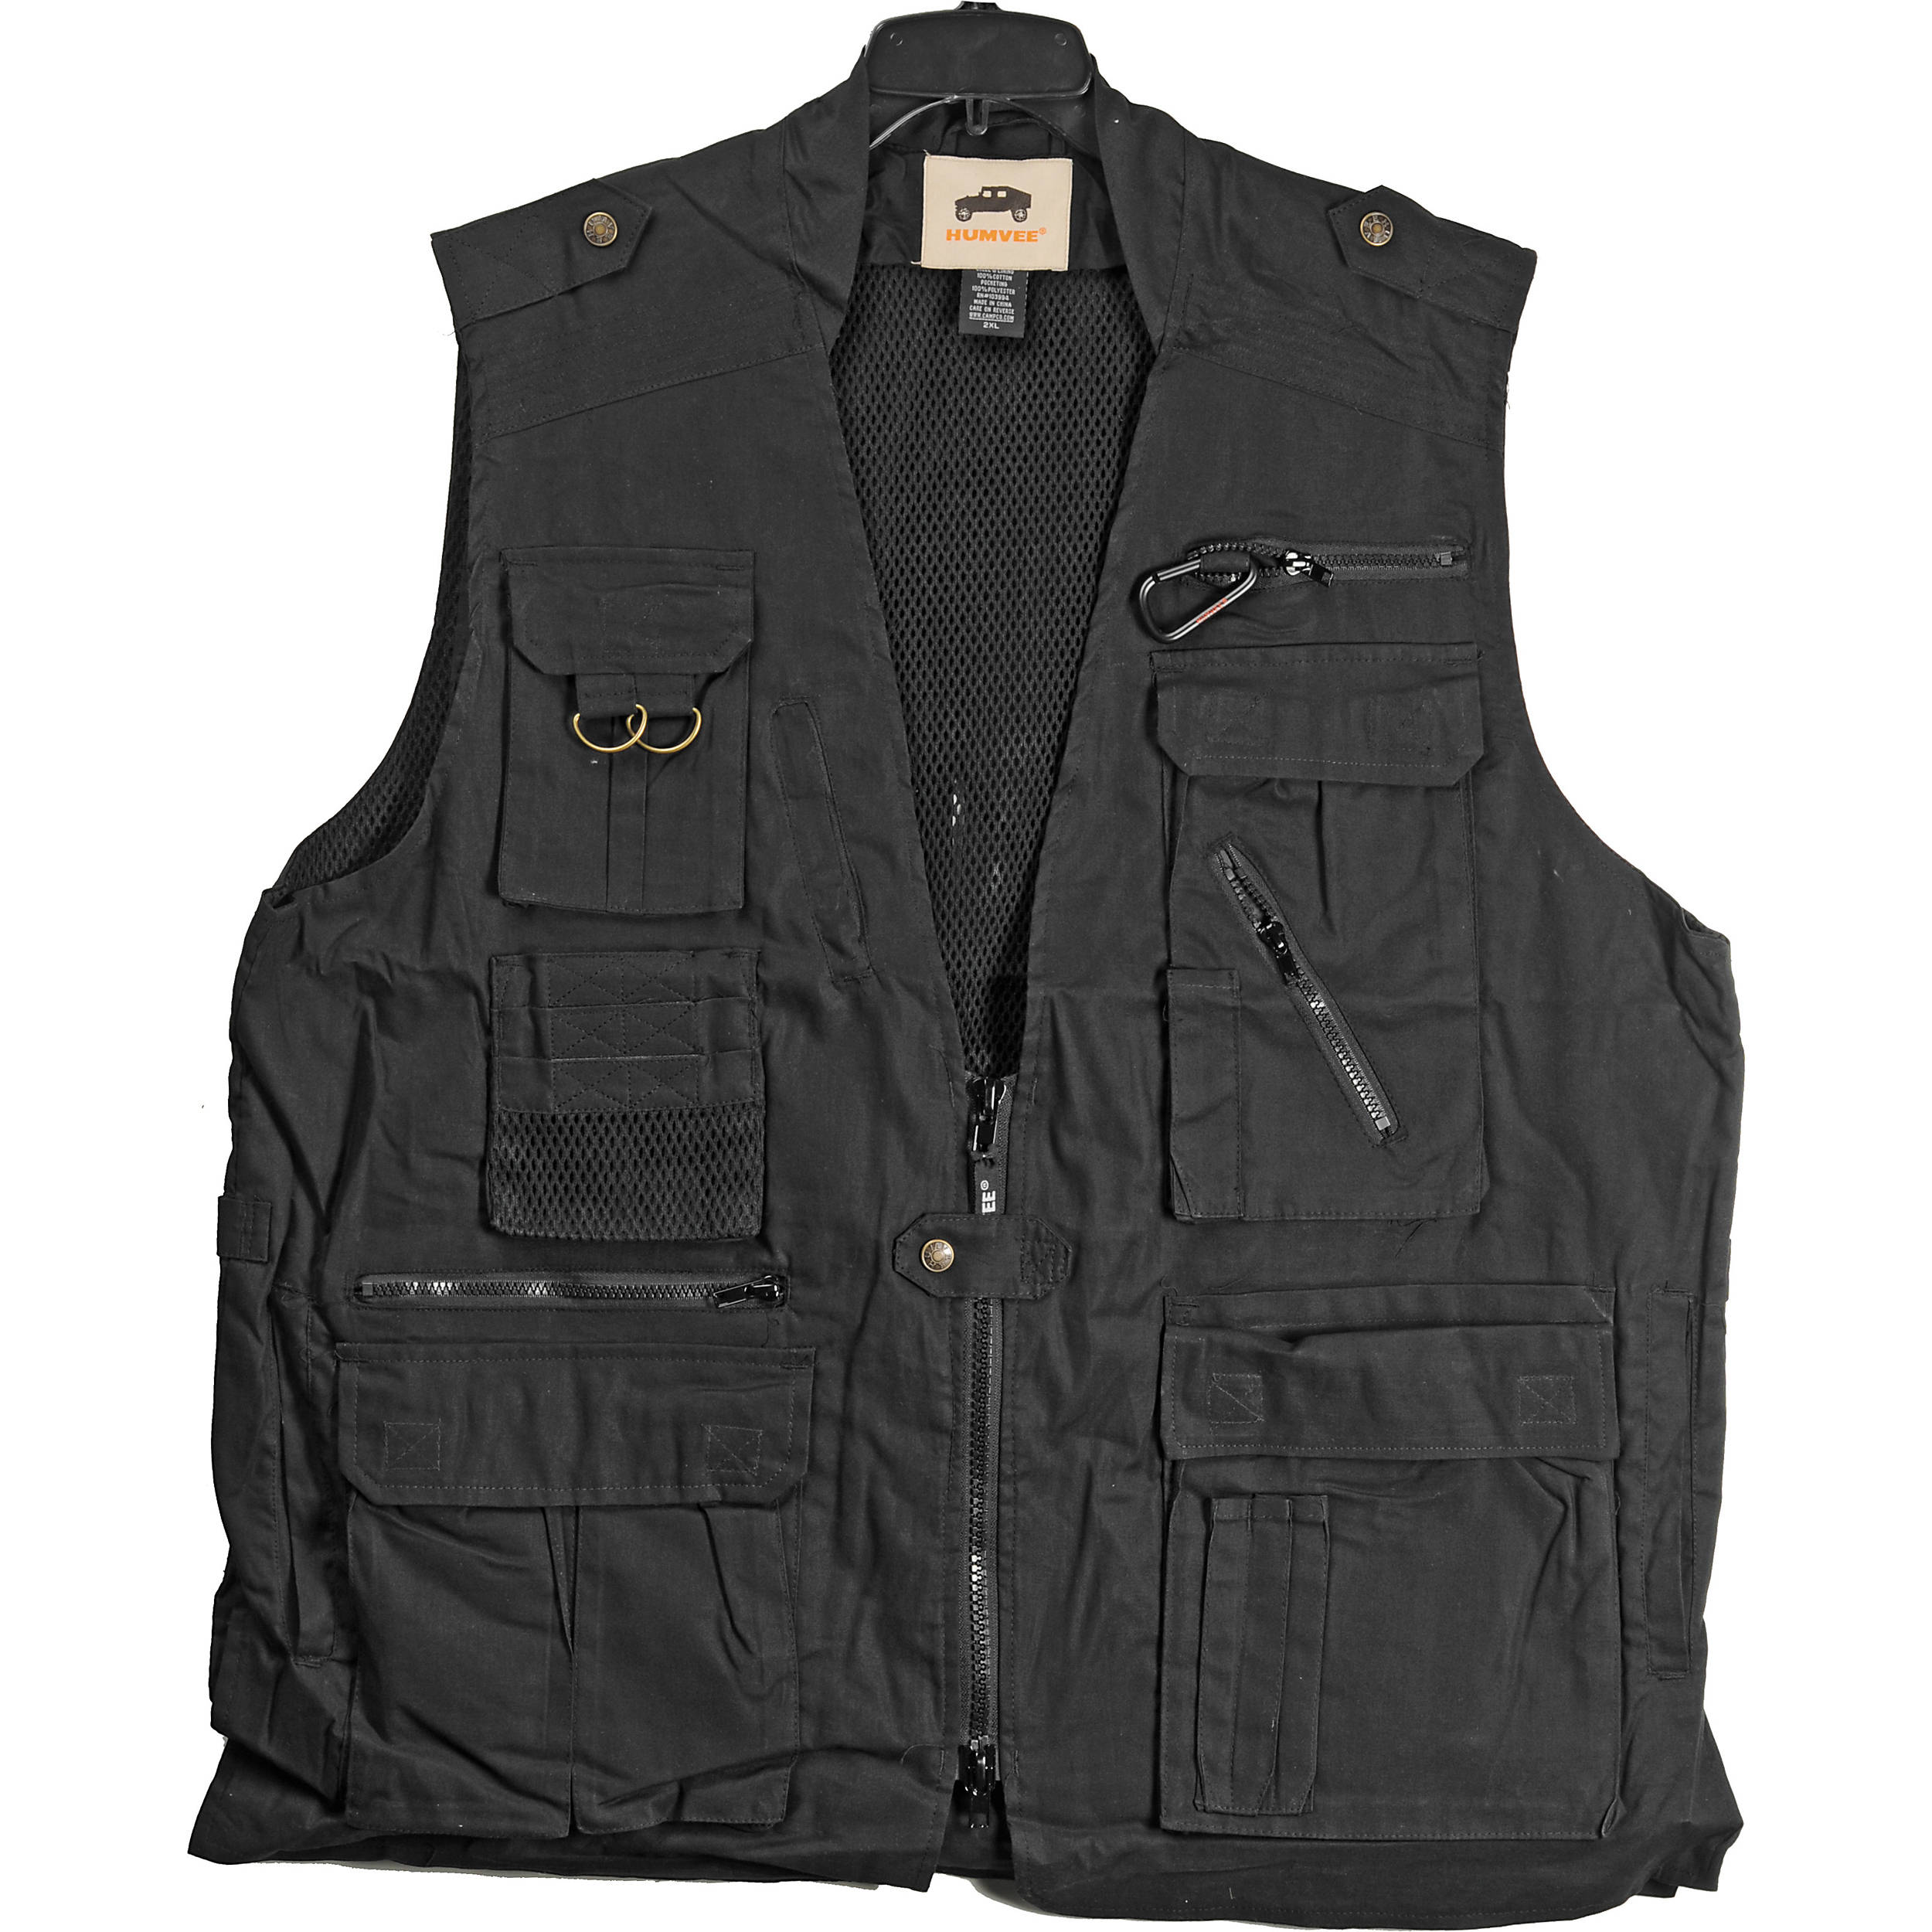 Humvee By Campco Safari Photo Vest Large Black Hmv Vs Bk L